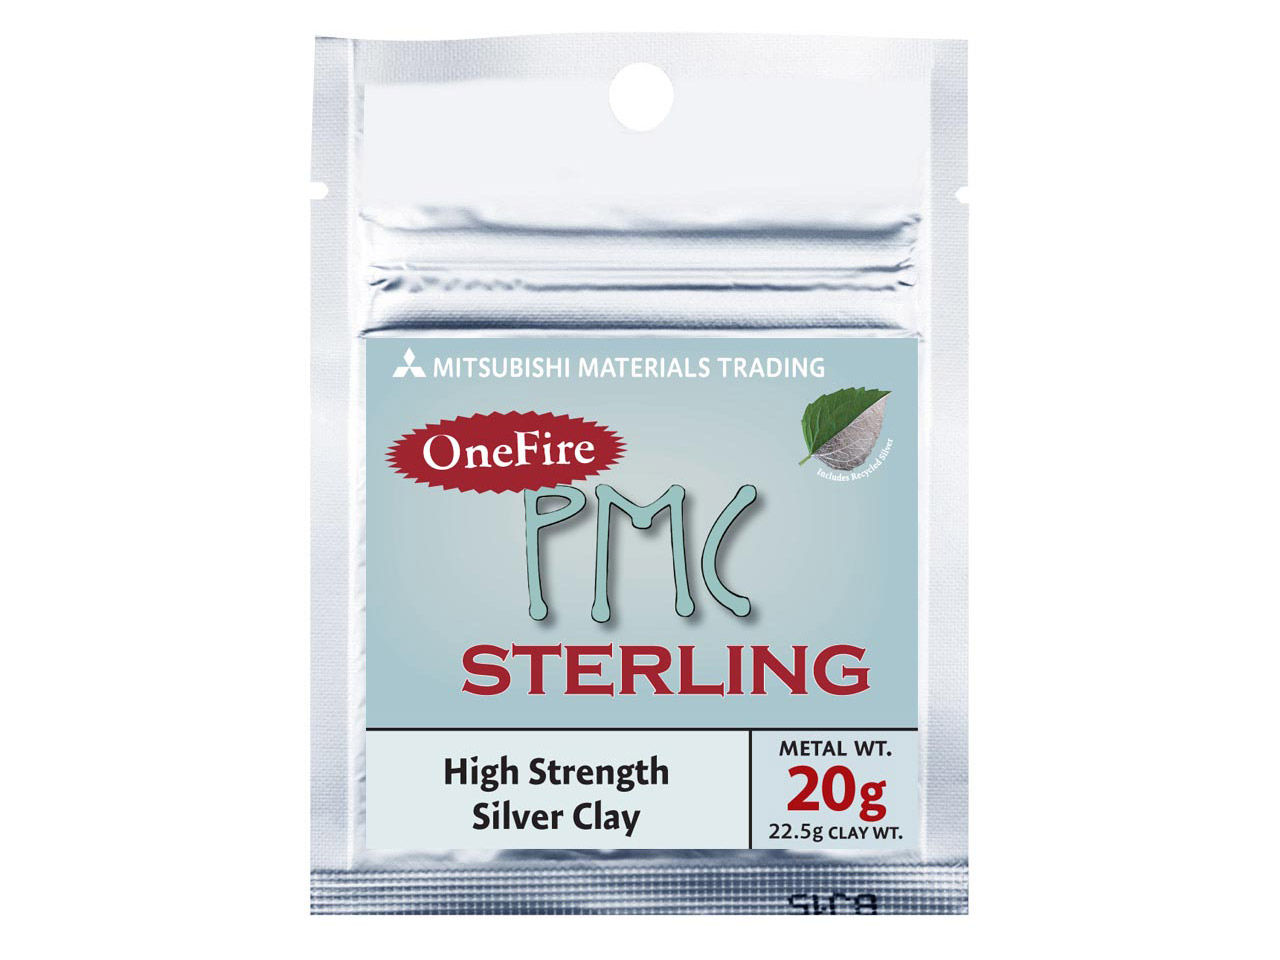 Precious Metal Clay Onefire        Sterling 22.5g Pmc